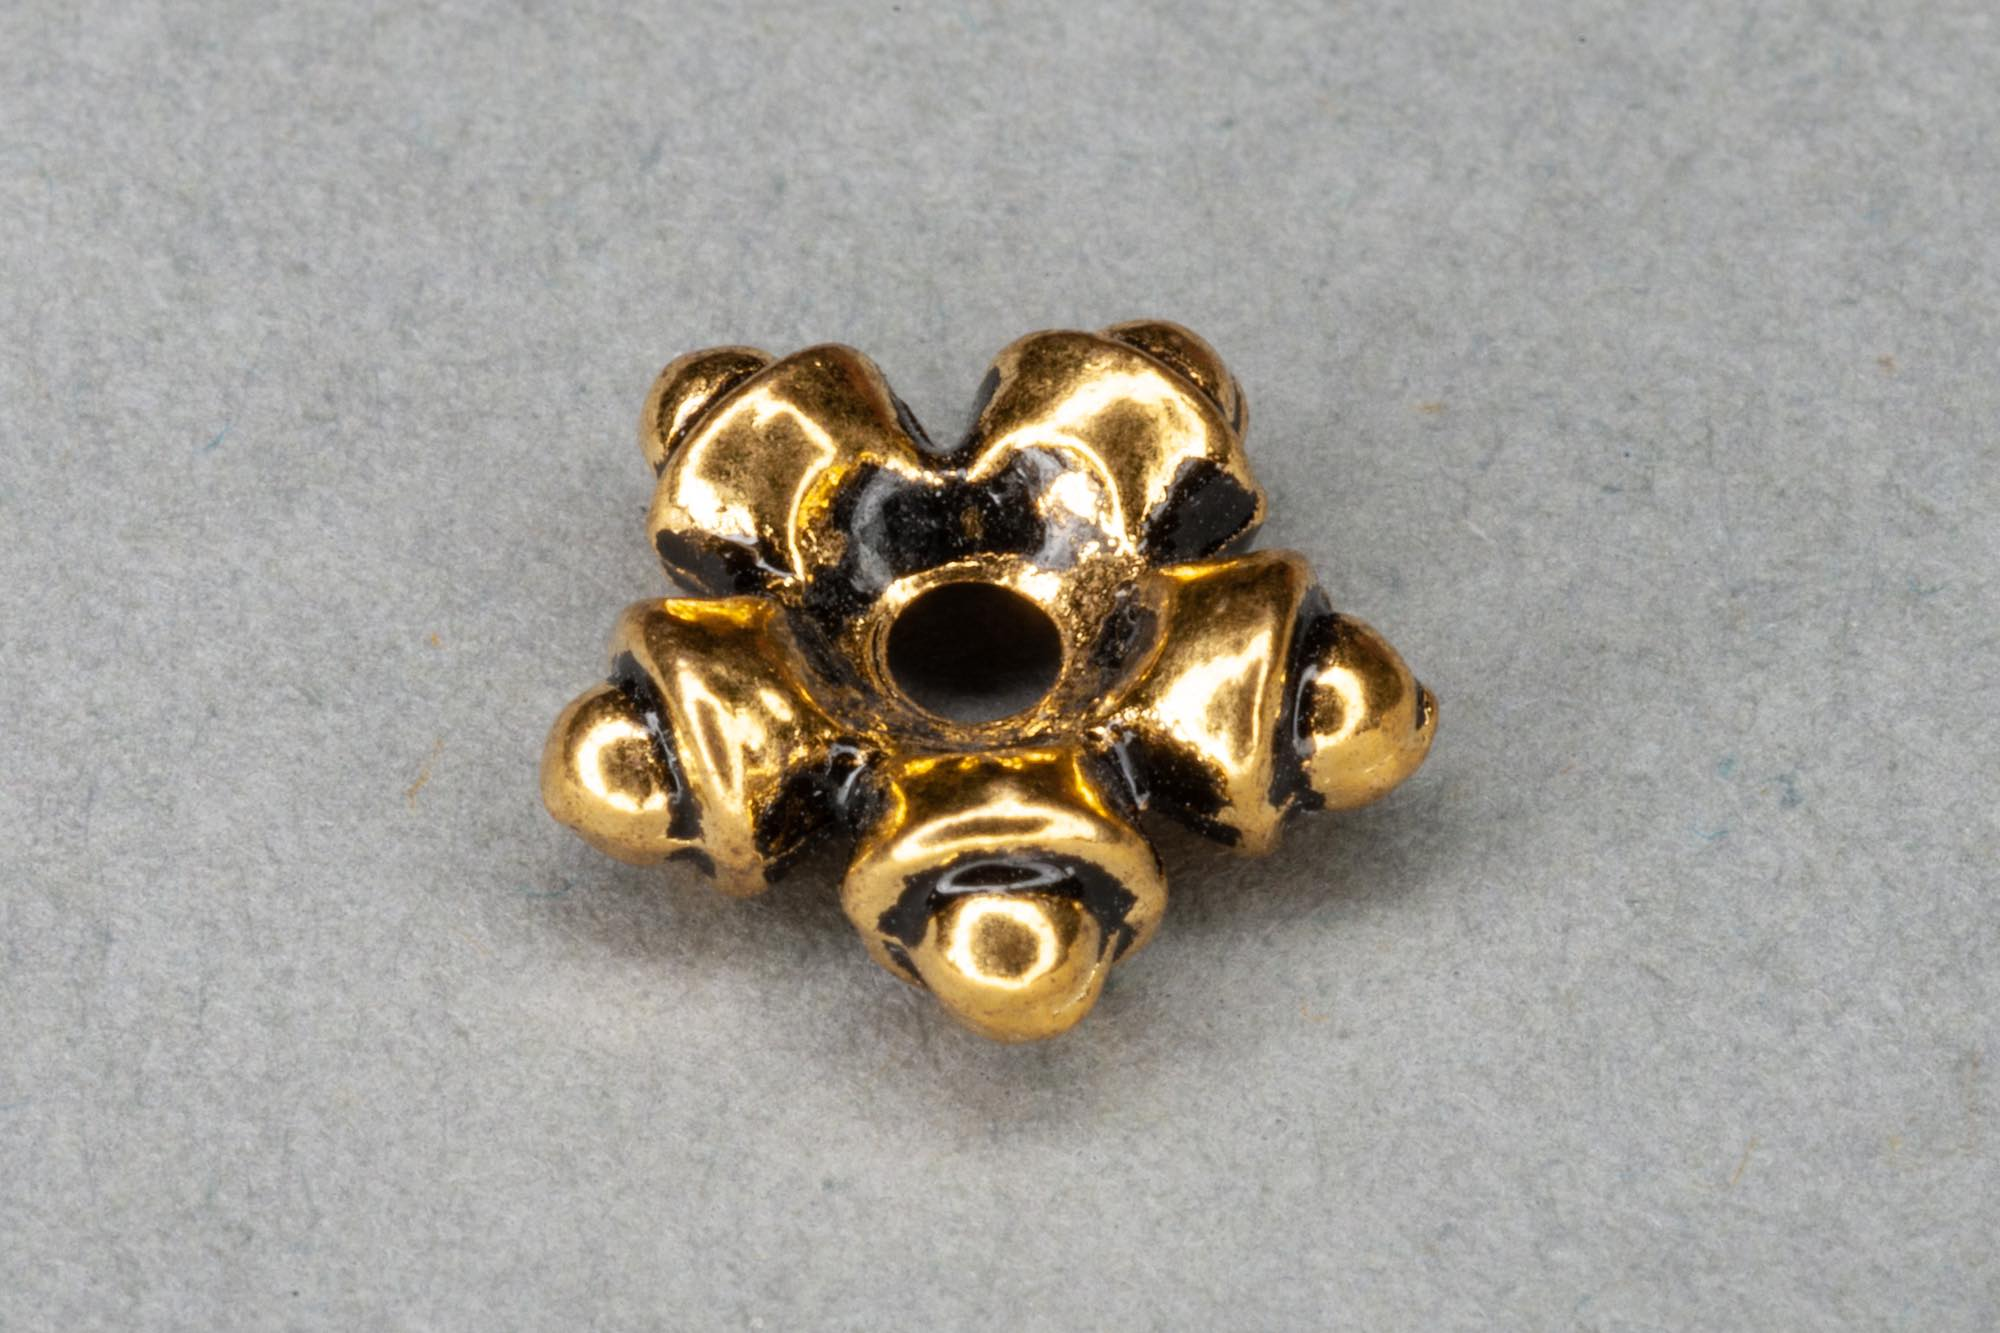 Antique Gold Plated Flat 'Star' Spacer Bead 10x3mm, 1.5mm hole